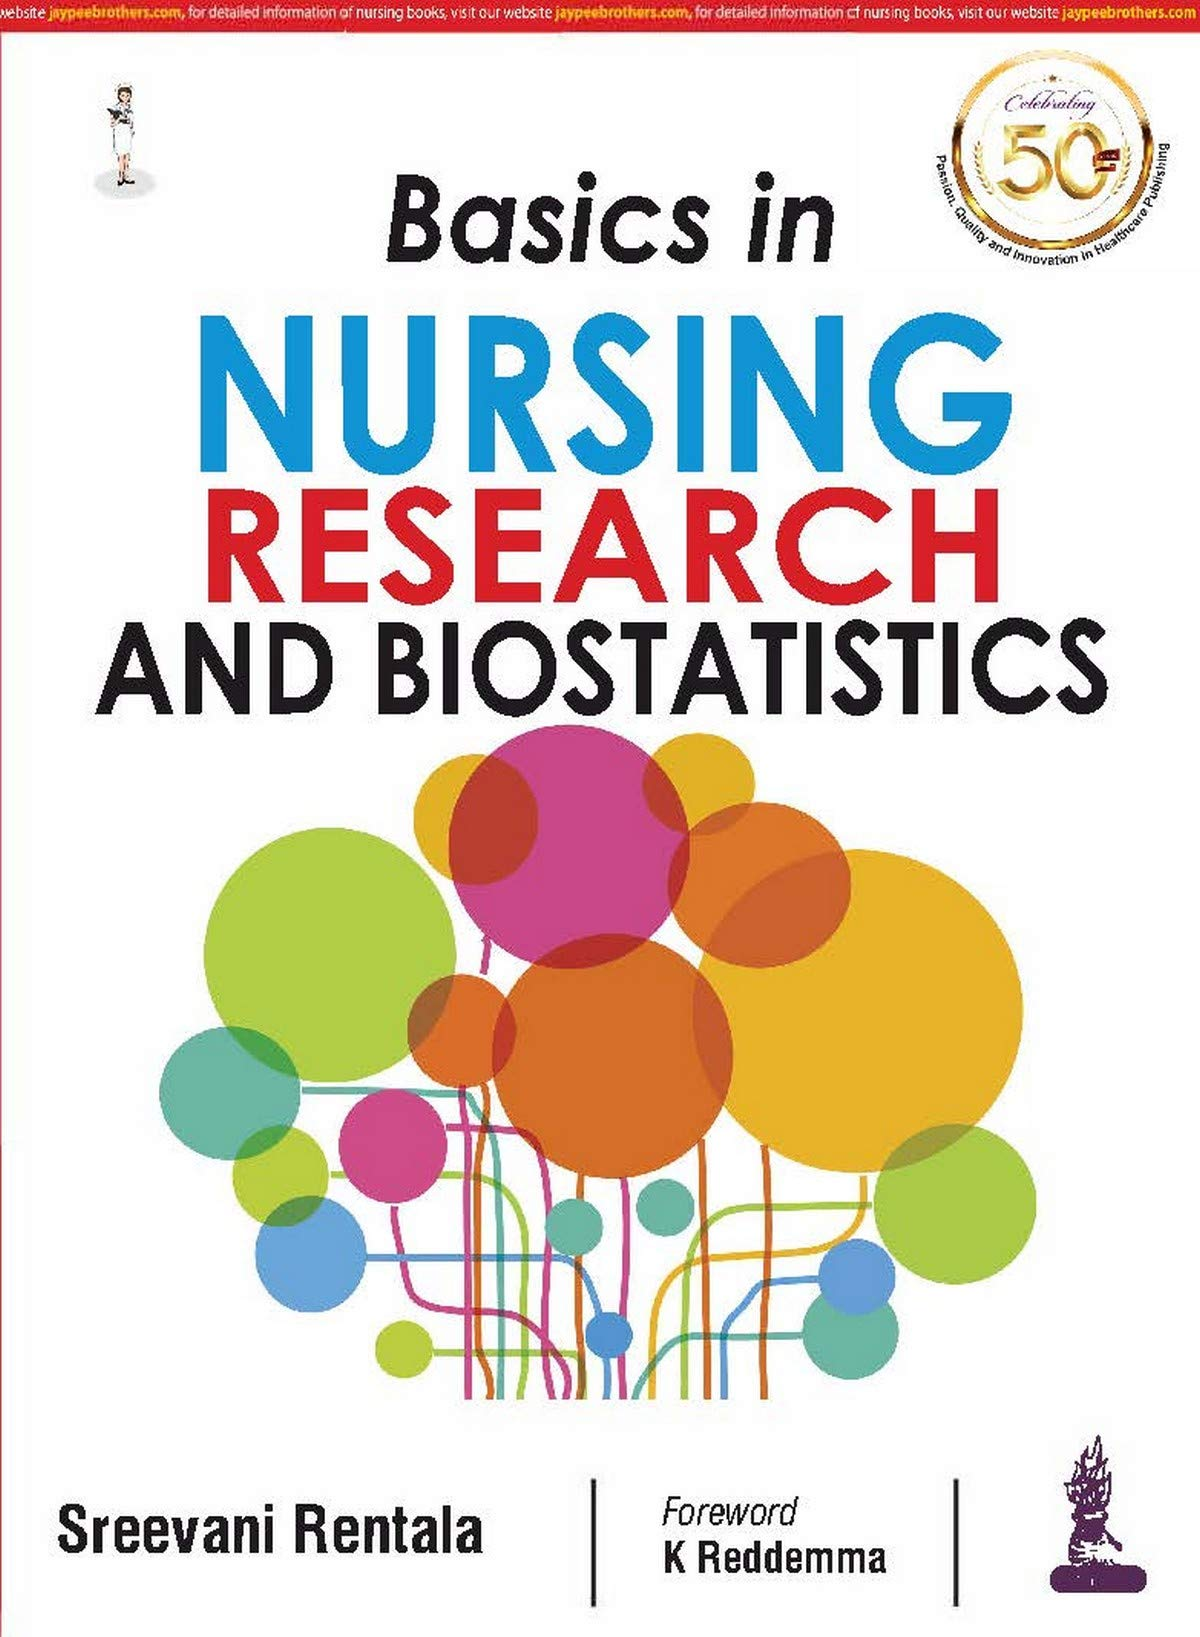 Buy Basics In Nursing Research and Biostatistics Book Online at Low